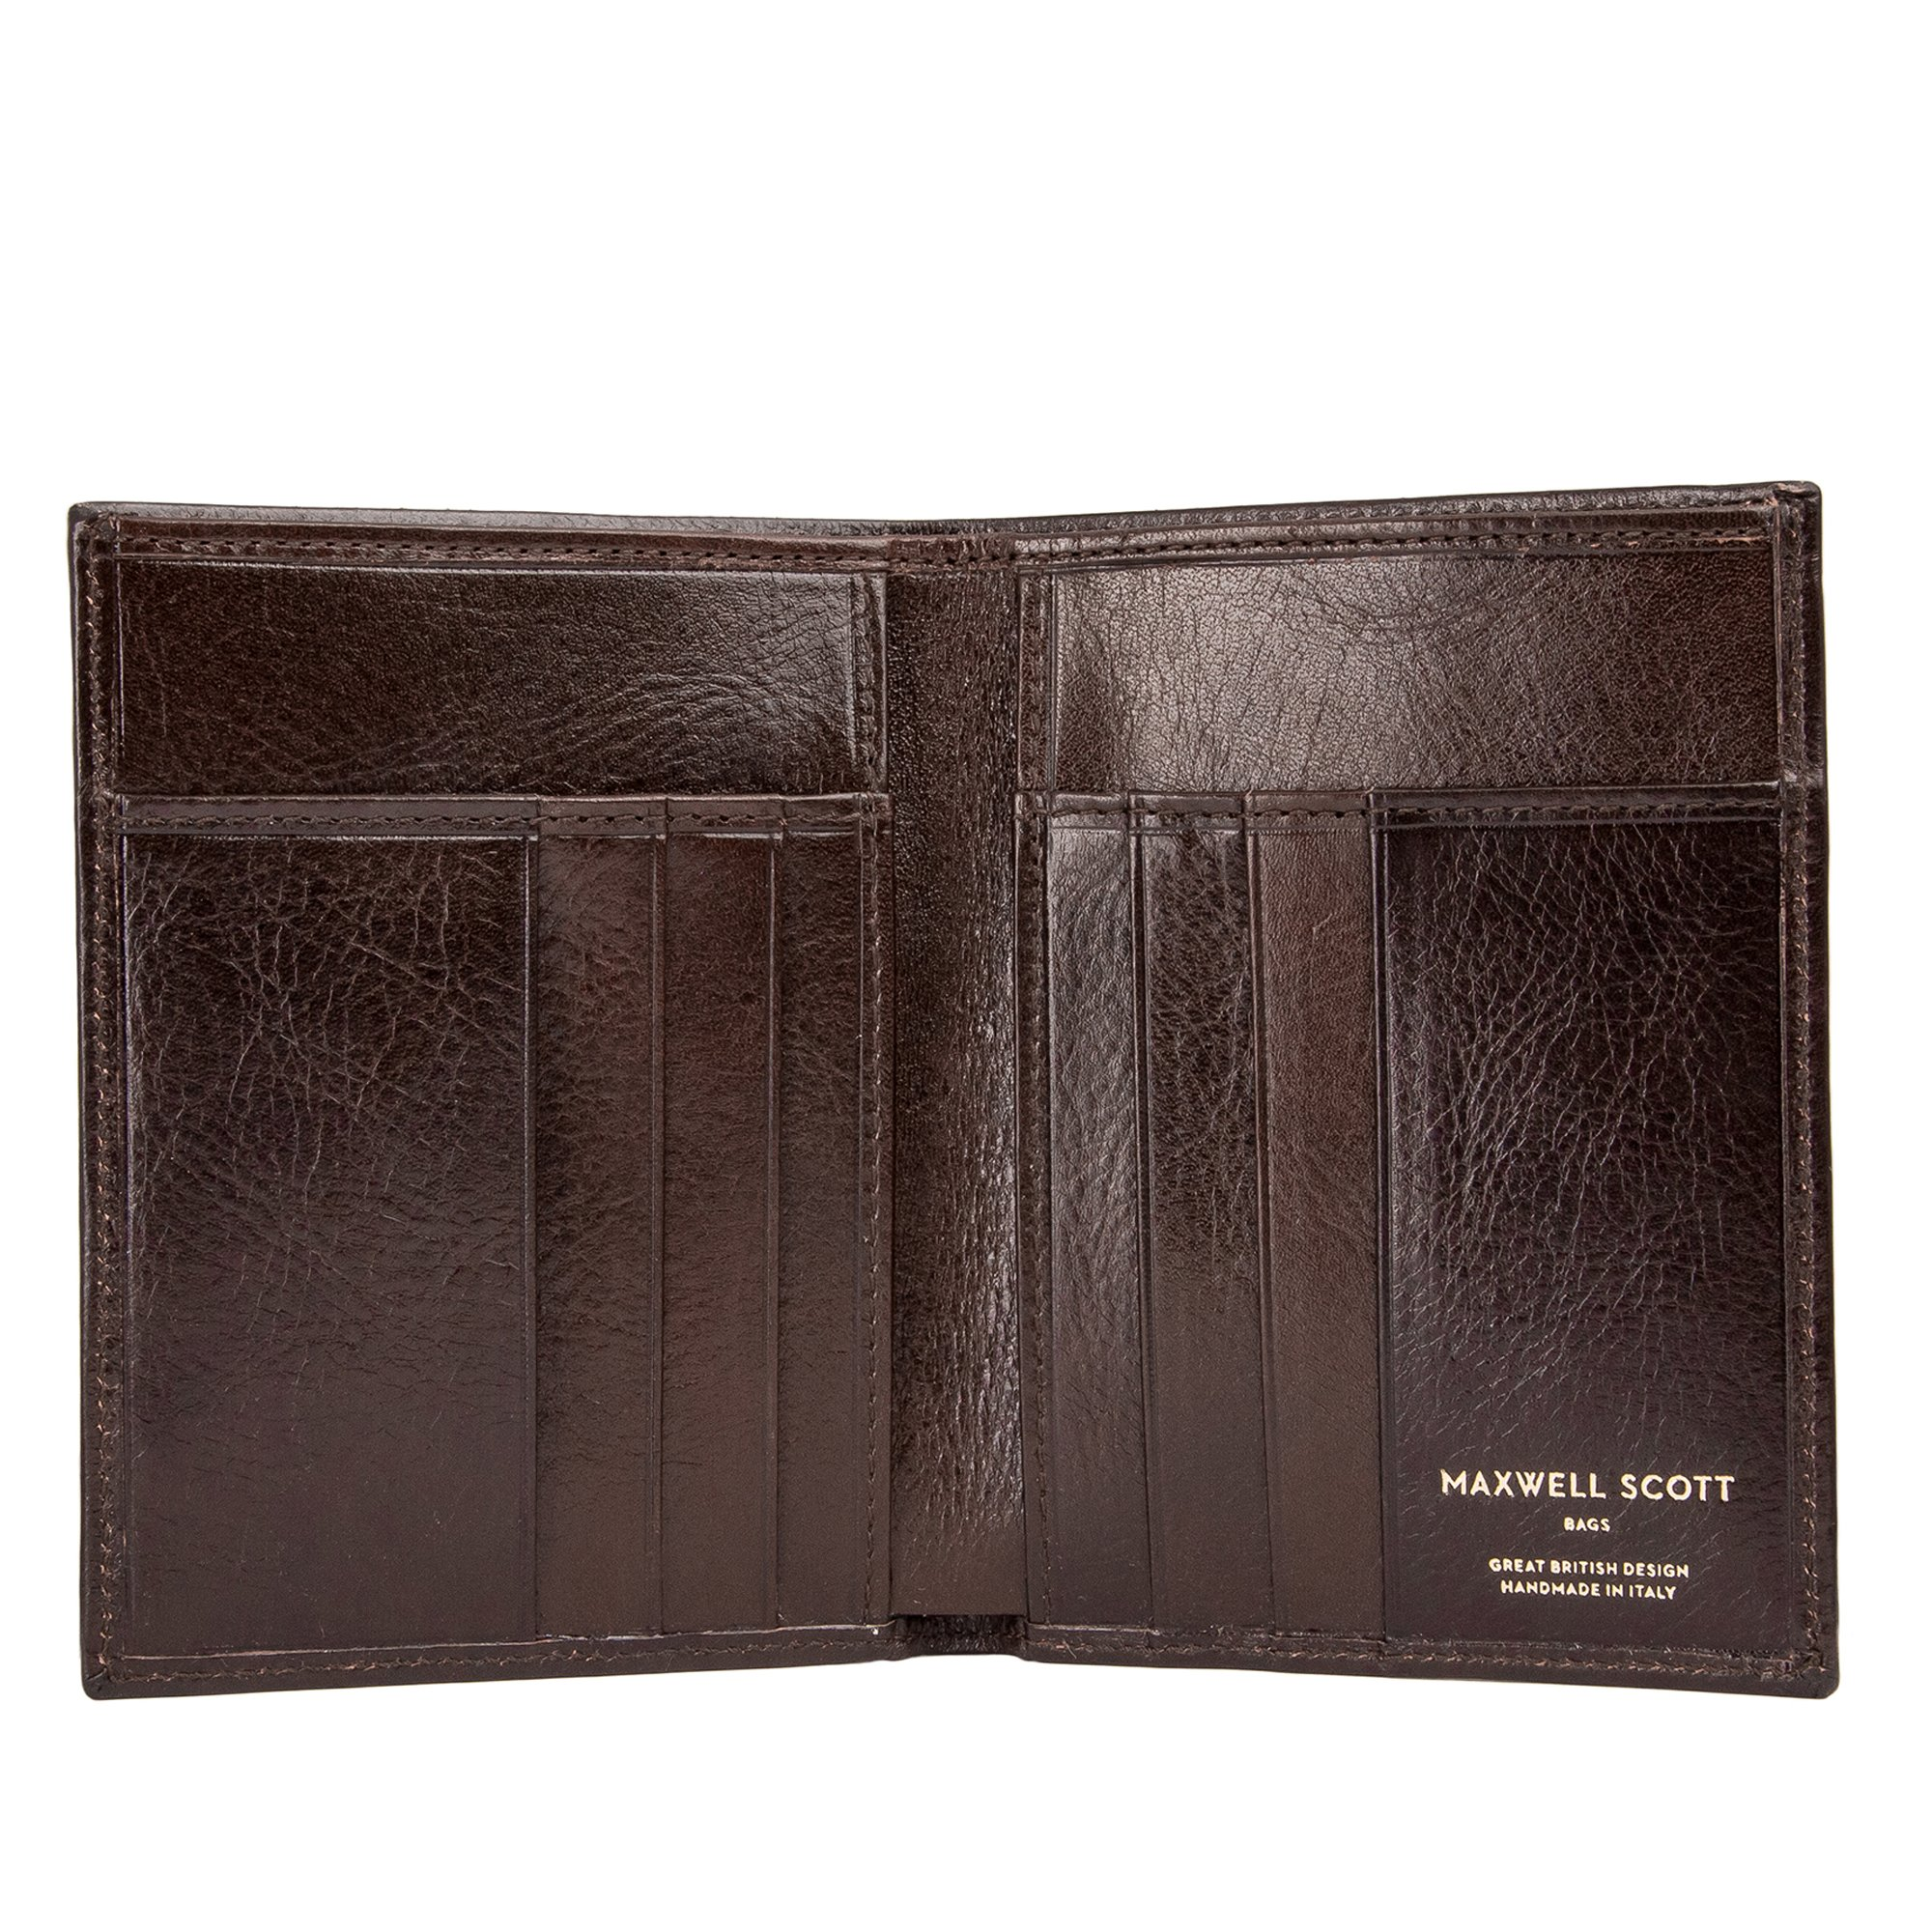 Maxwell Scott® Luxury Brown Leather Credit Card Wallet - One Size (The Salerno)